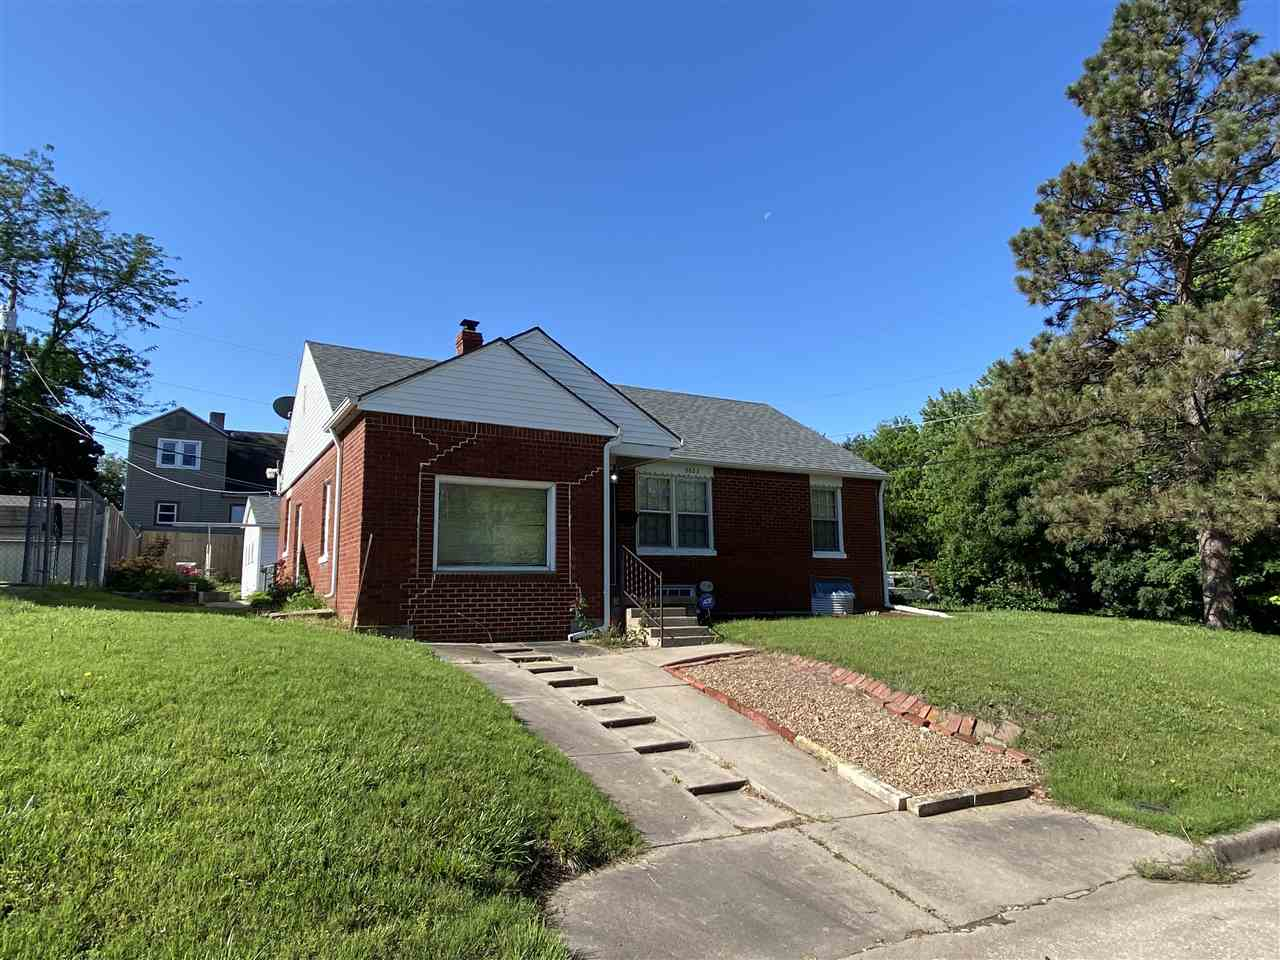 Cute home centrally located on corner lot. This 3 bedroom, 2 bathroom home features a large, detache